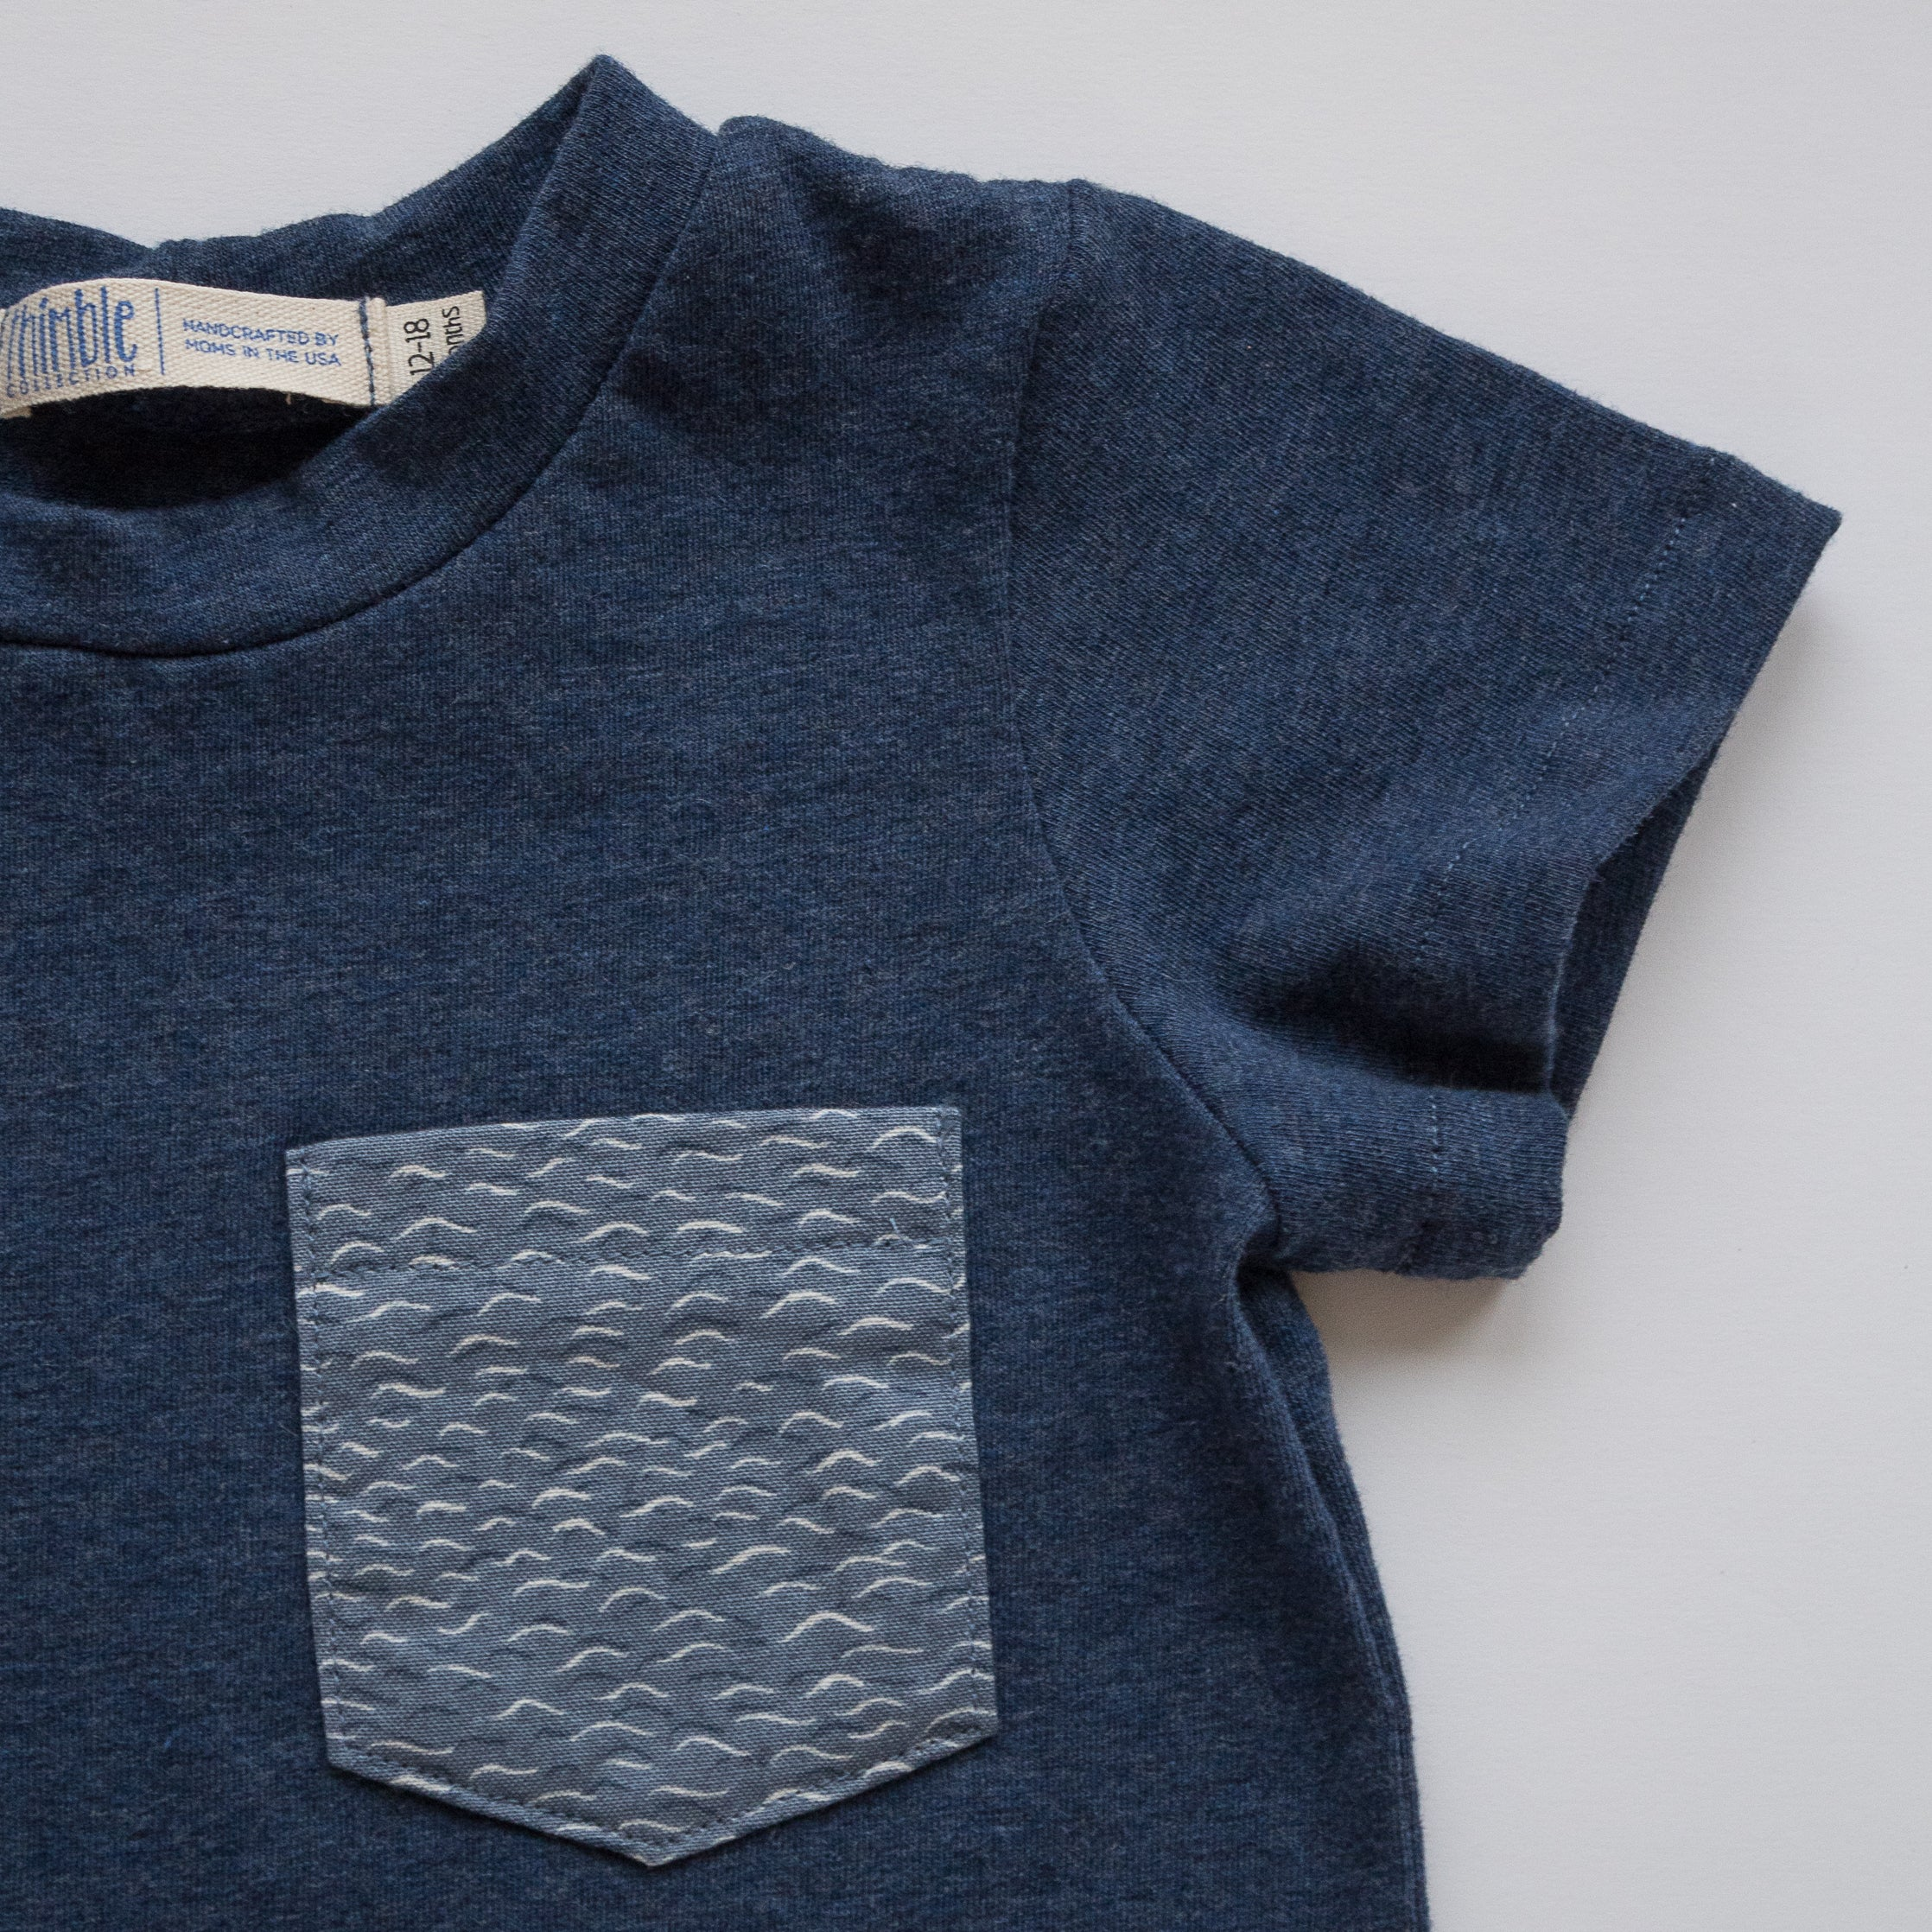 Pocket Tee in Tide Watching